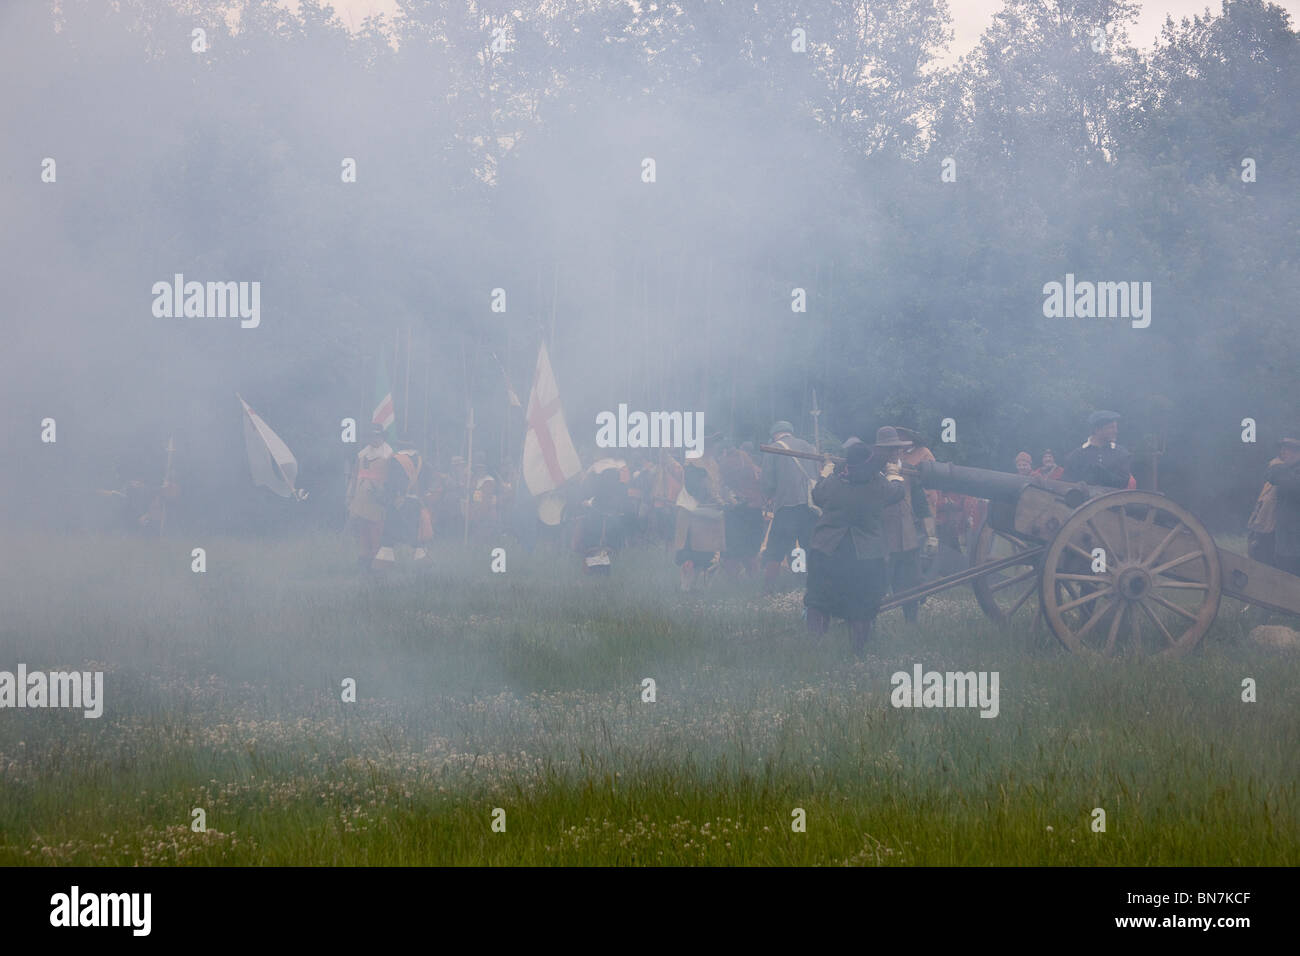 Ramming the charge down the canon's barrel, in the smoke of the previous firing, ready for the next battery - Stock Image